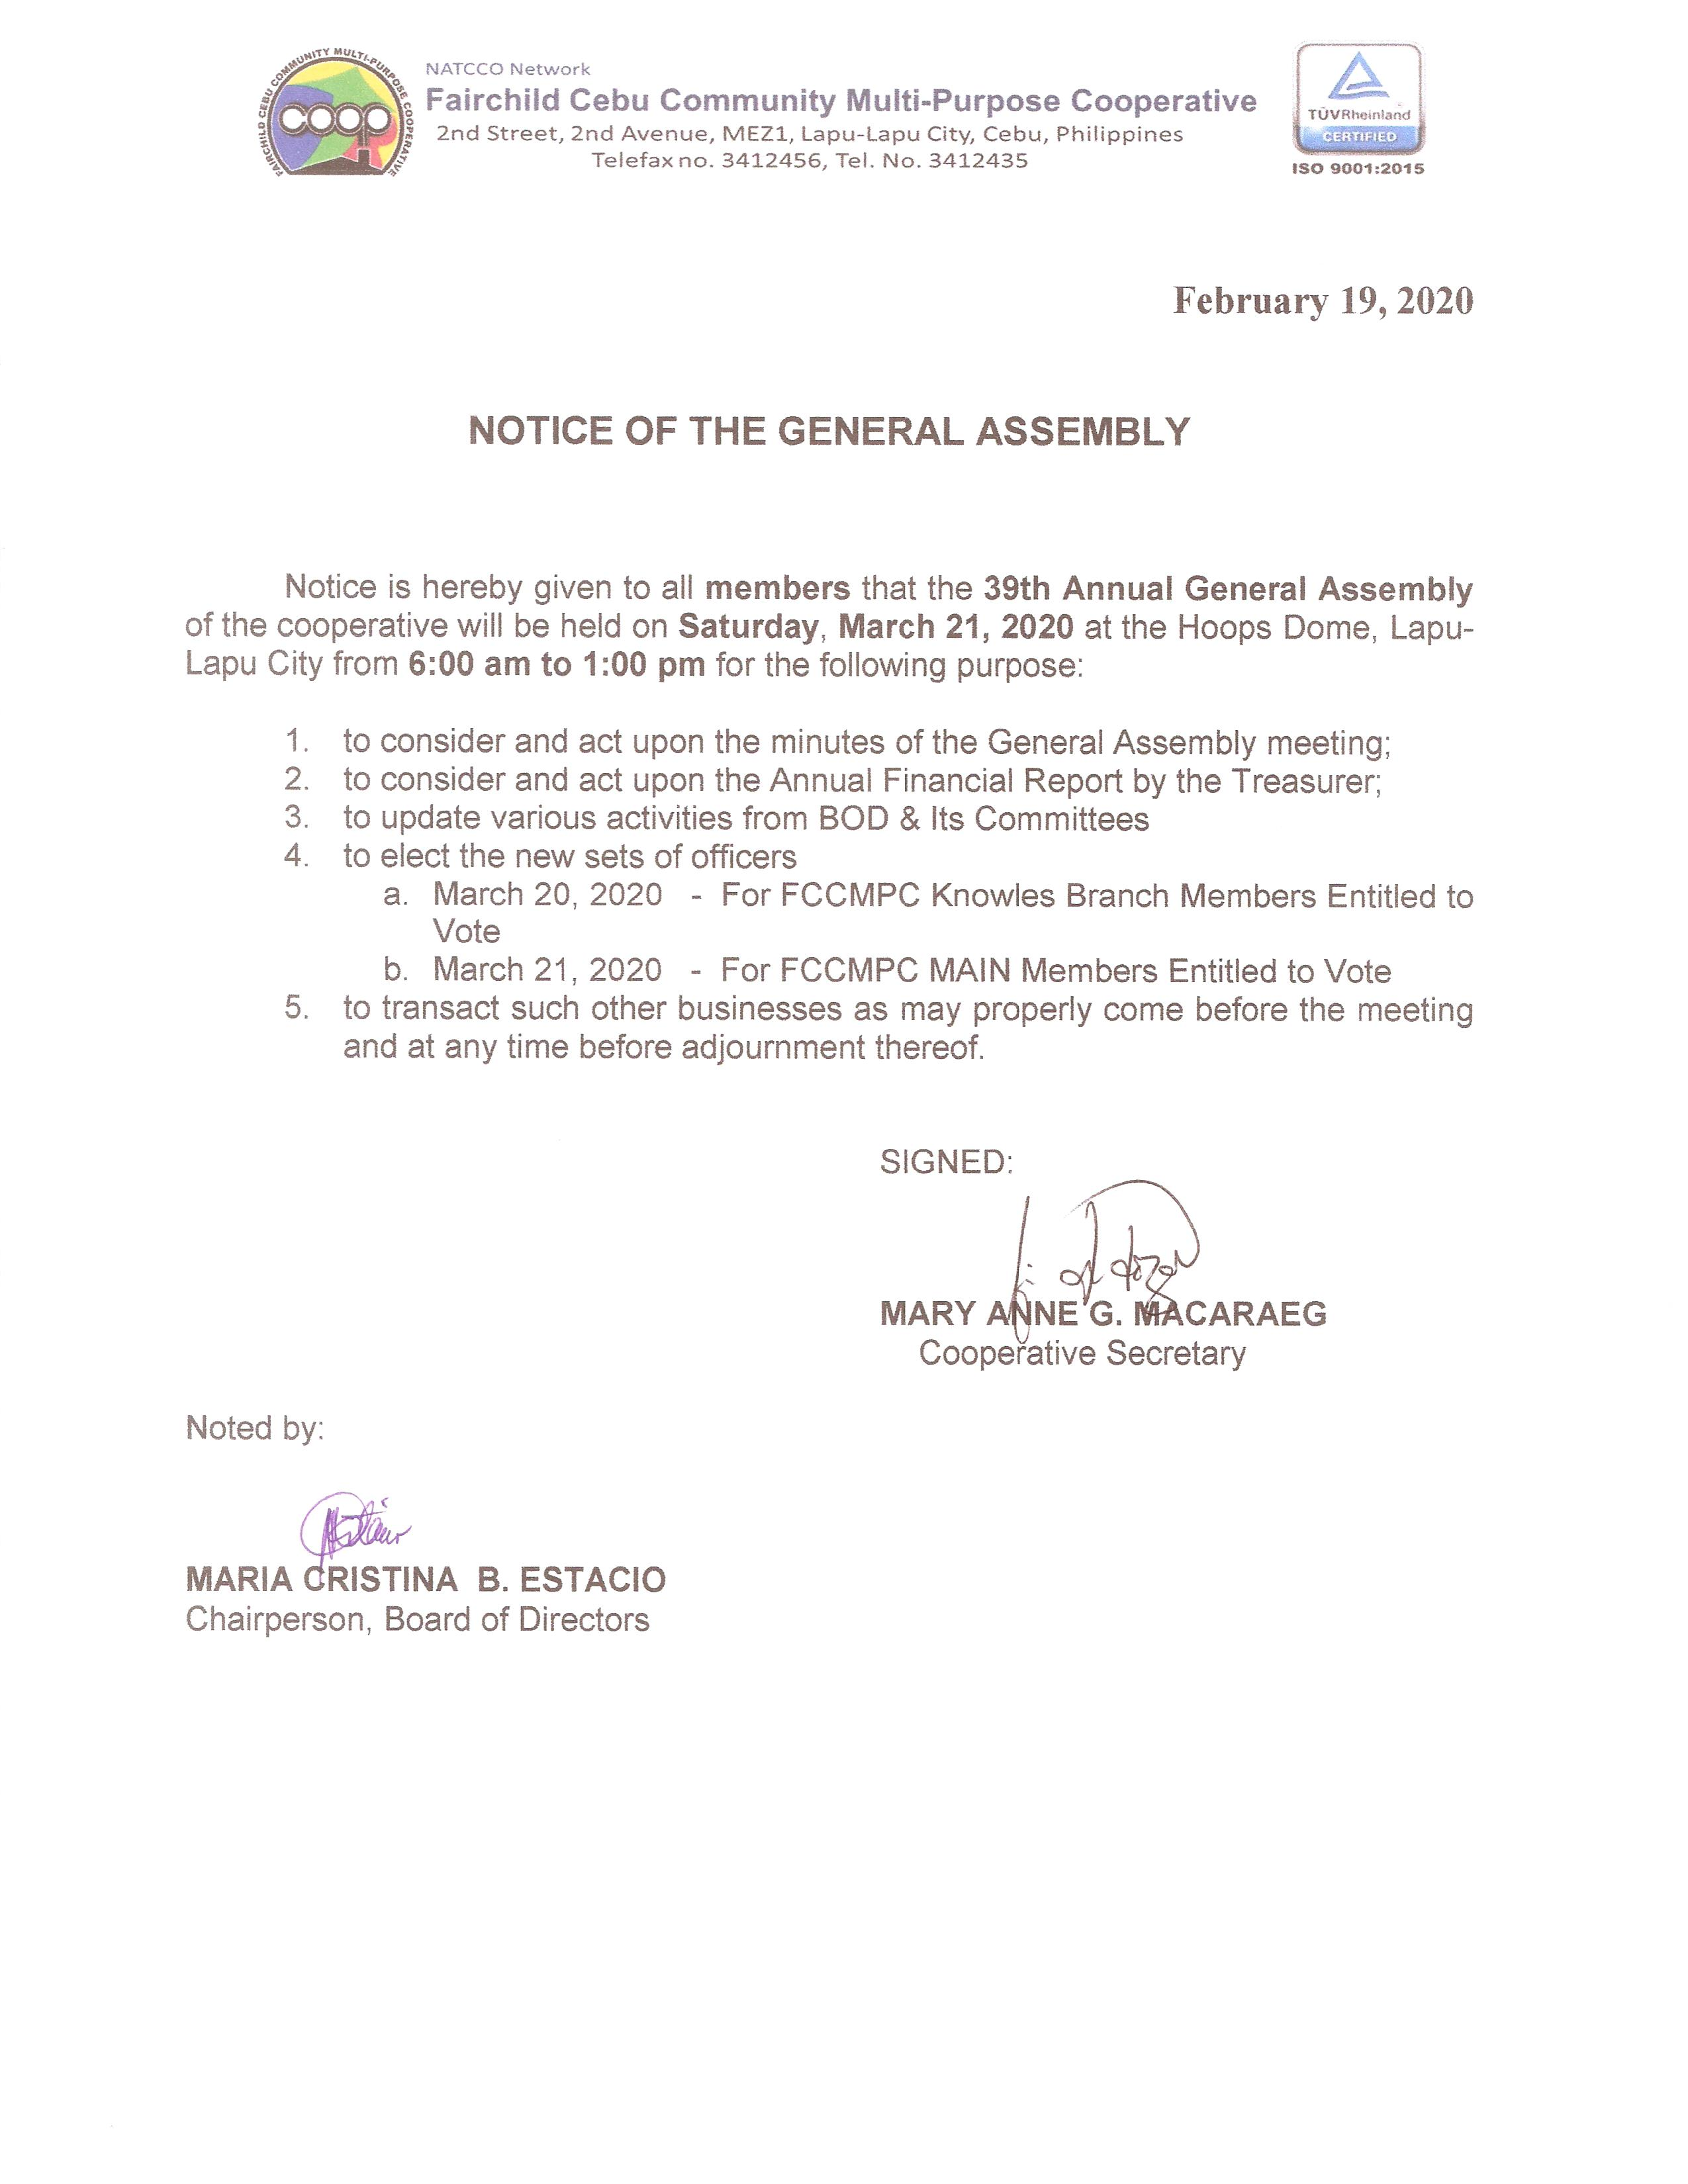 Notice of 39th Annual General Assembly